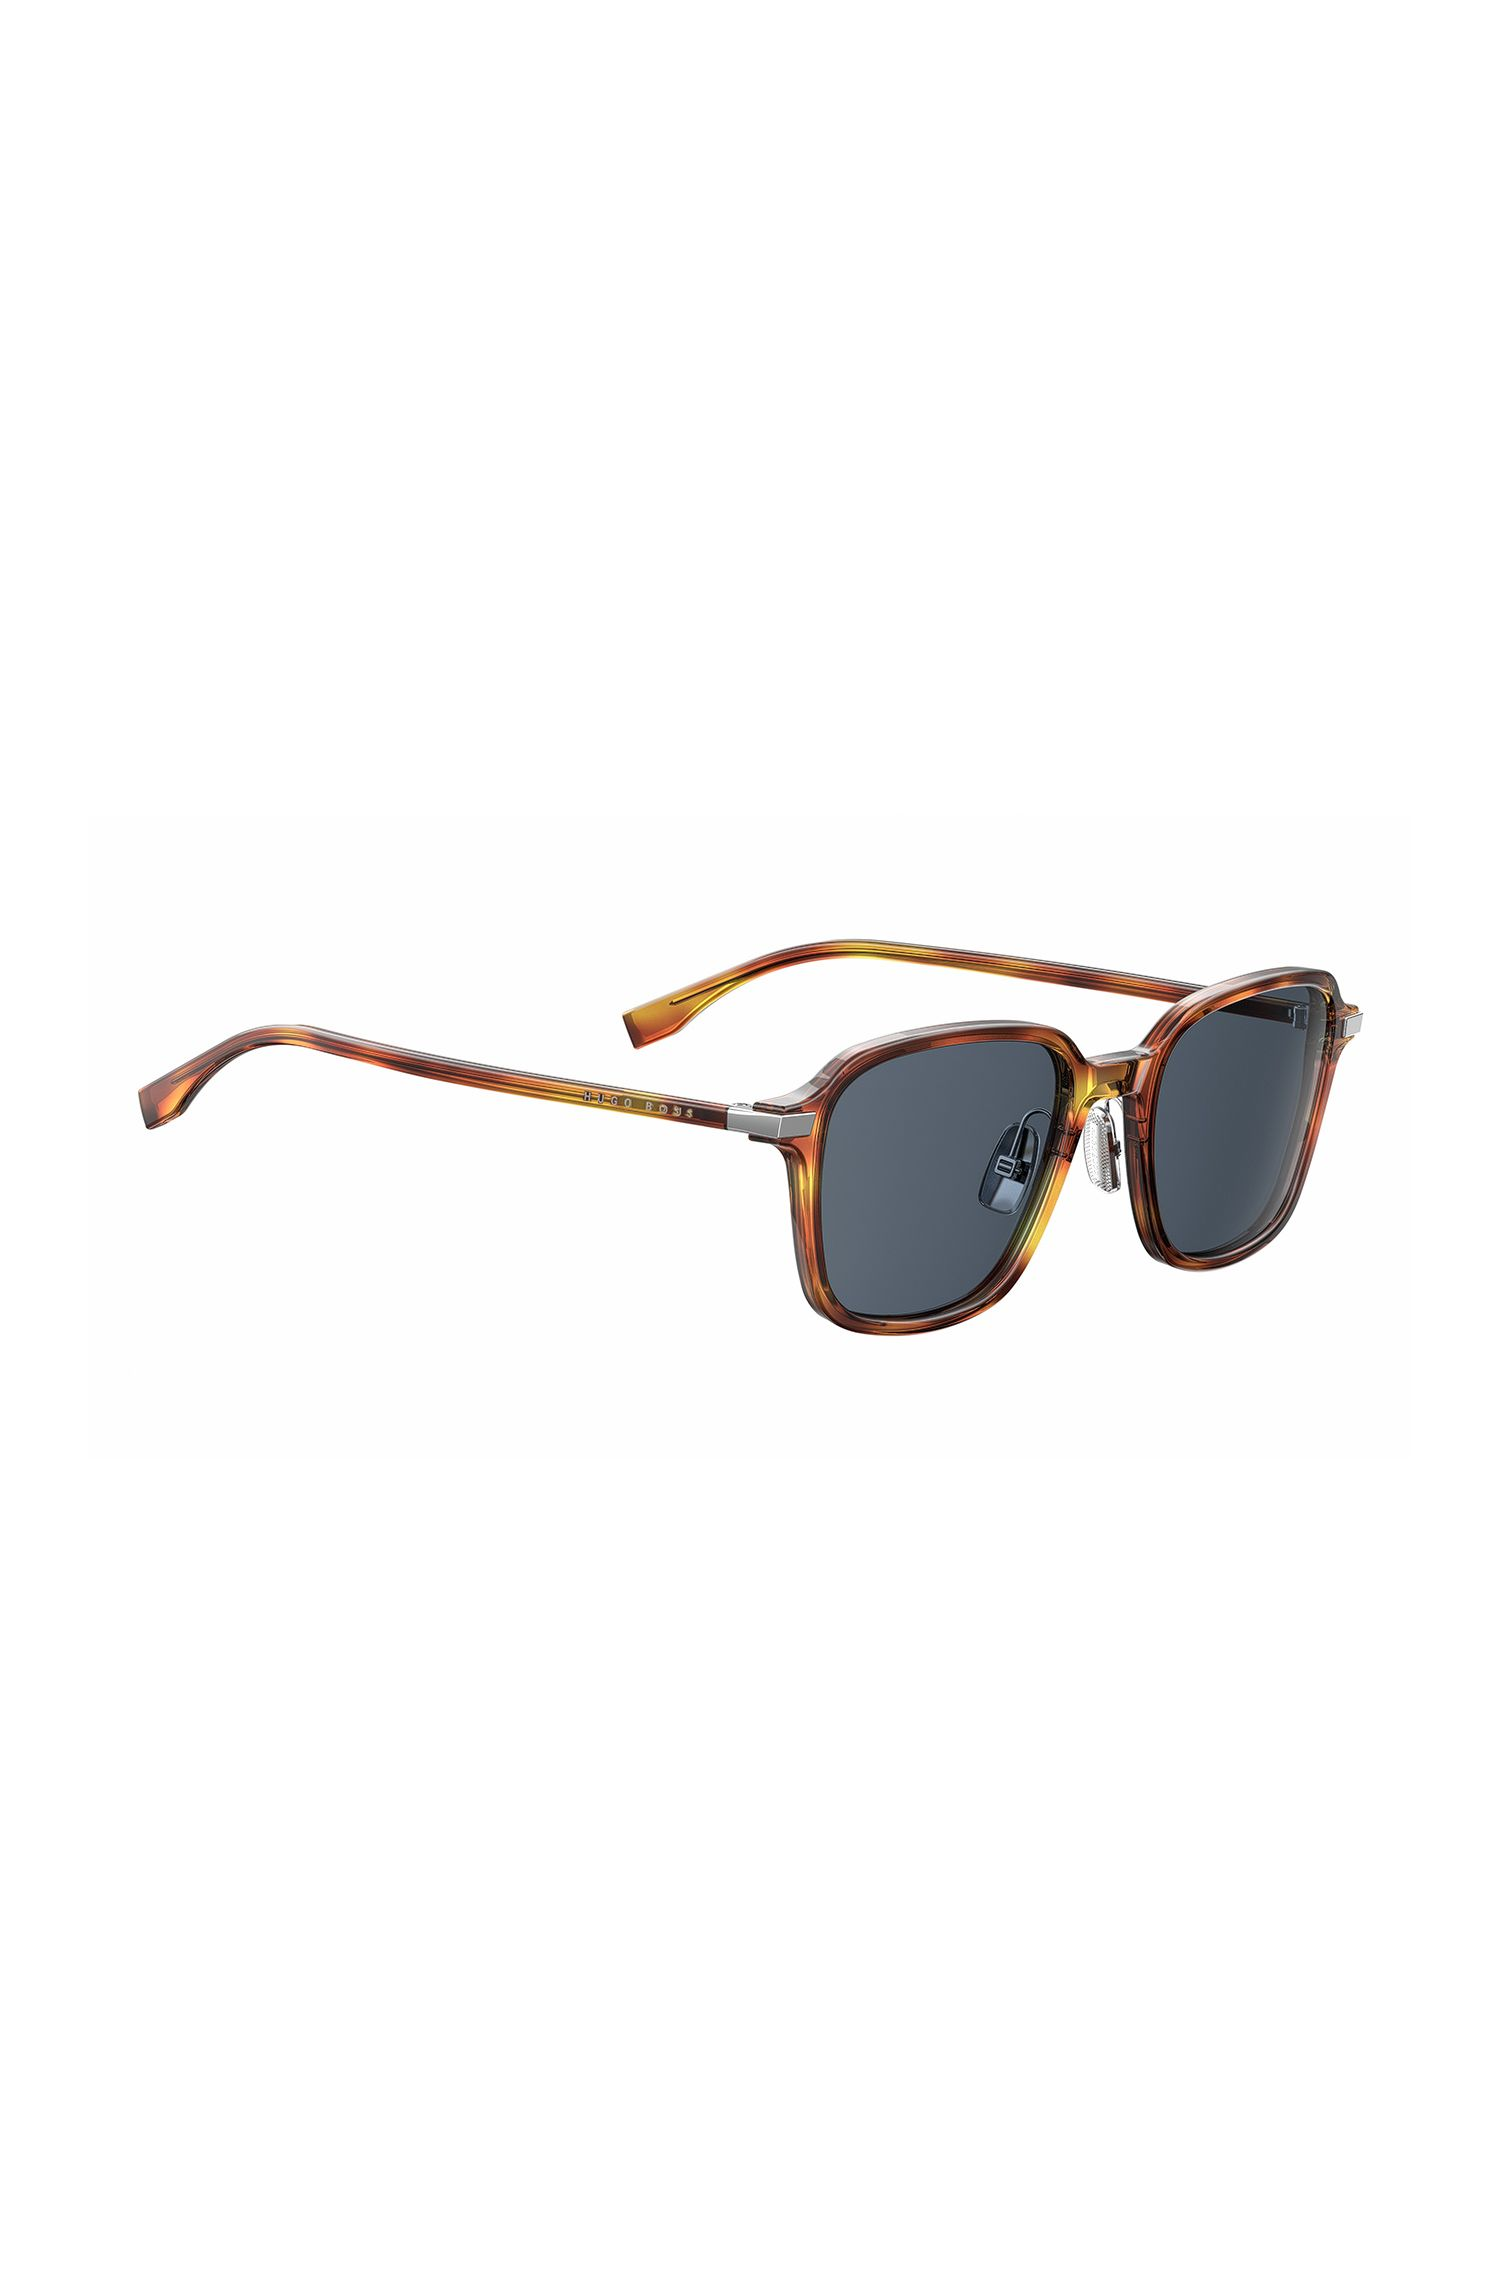 Black Lens Havana Square Sunglasses | BOSS 0909S